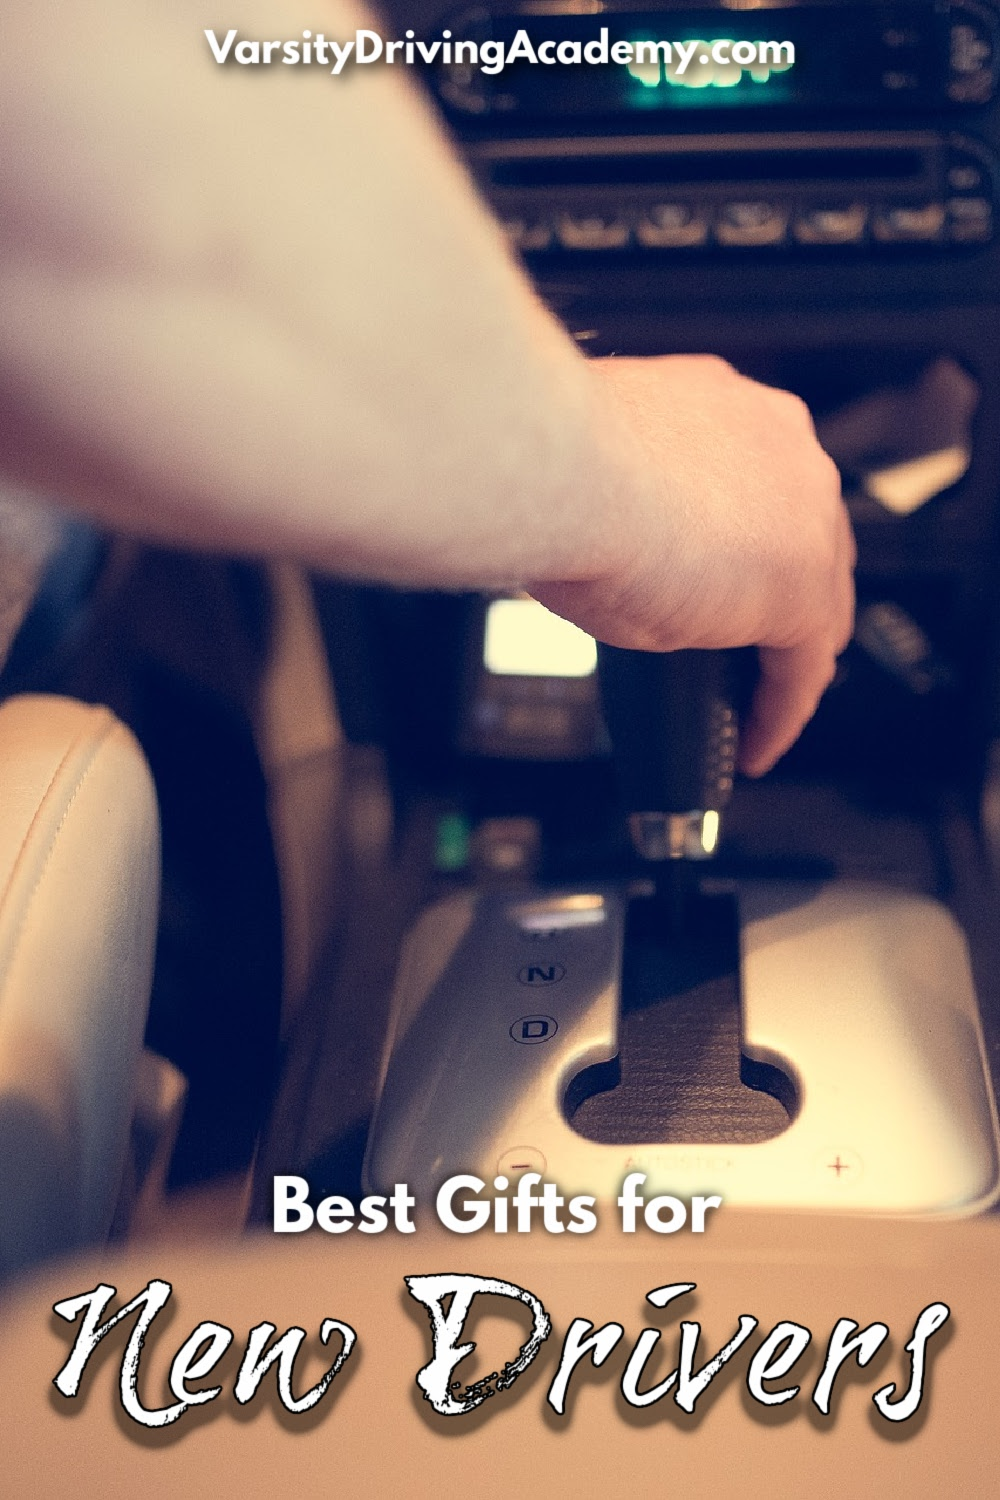 The best gifts for new drivers will help make their journey safer and more fun but also just celebrate the milestone they have reached.